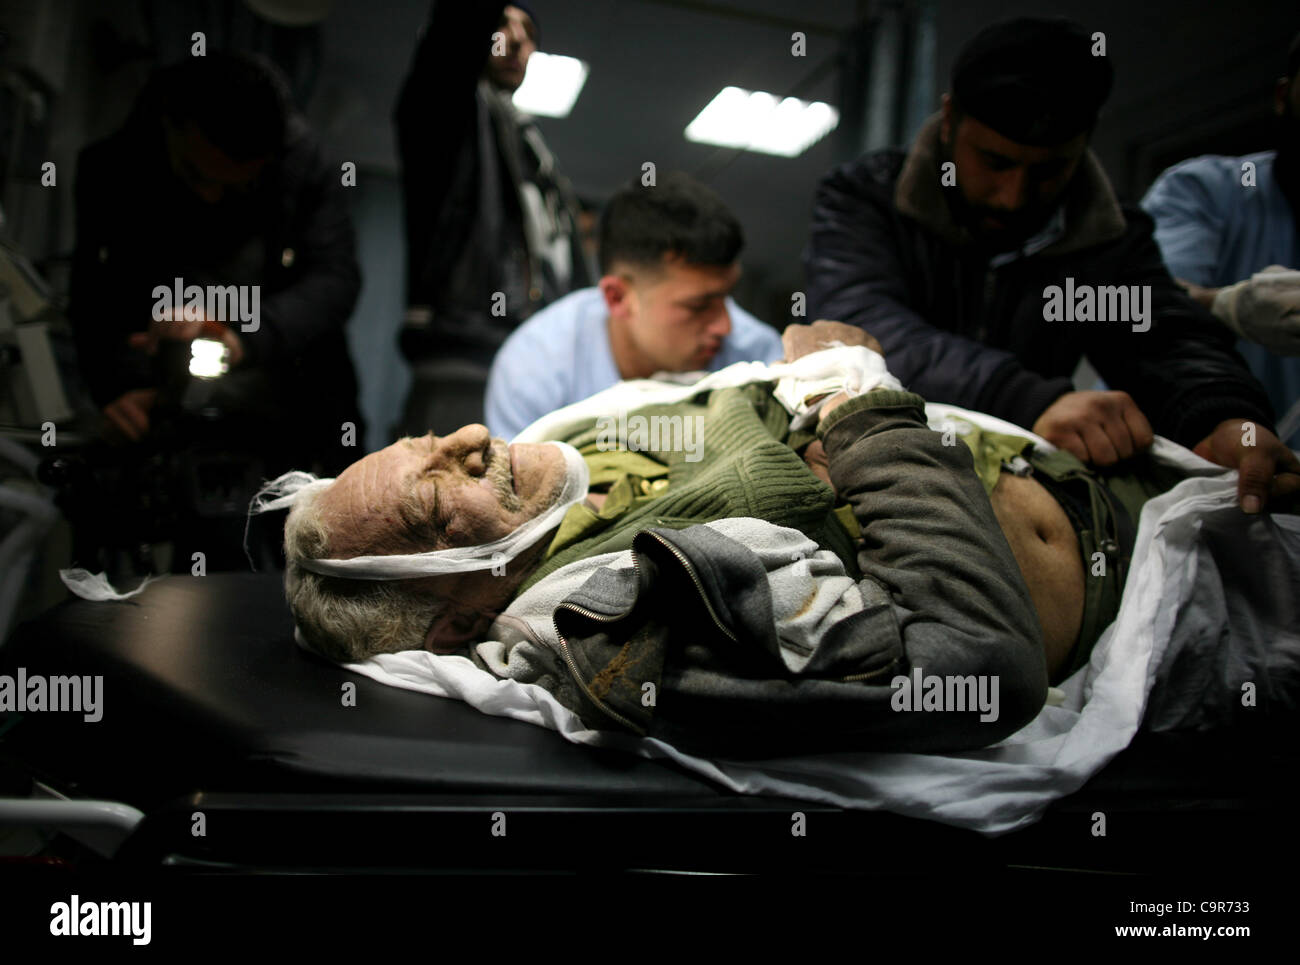 Feb. 12, 2012 - Gaza City, Gaza Strip, Palestinian Territory - Palestinian medical workers examine the body of Abdelkarim - Stock Image